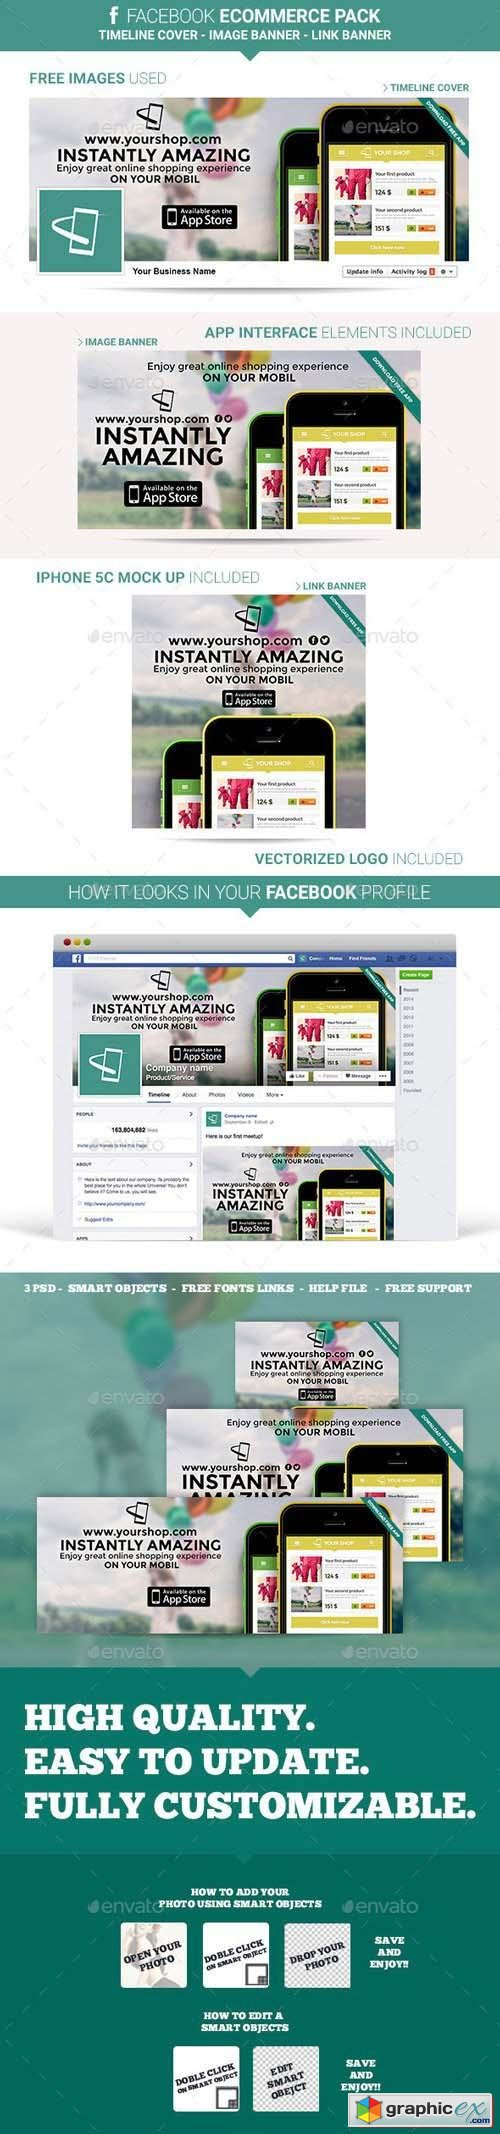 Facebook Ecommerce Pack